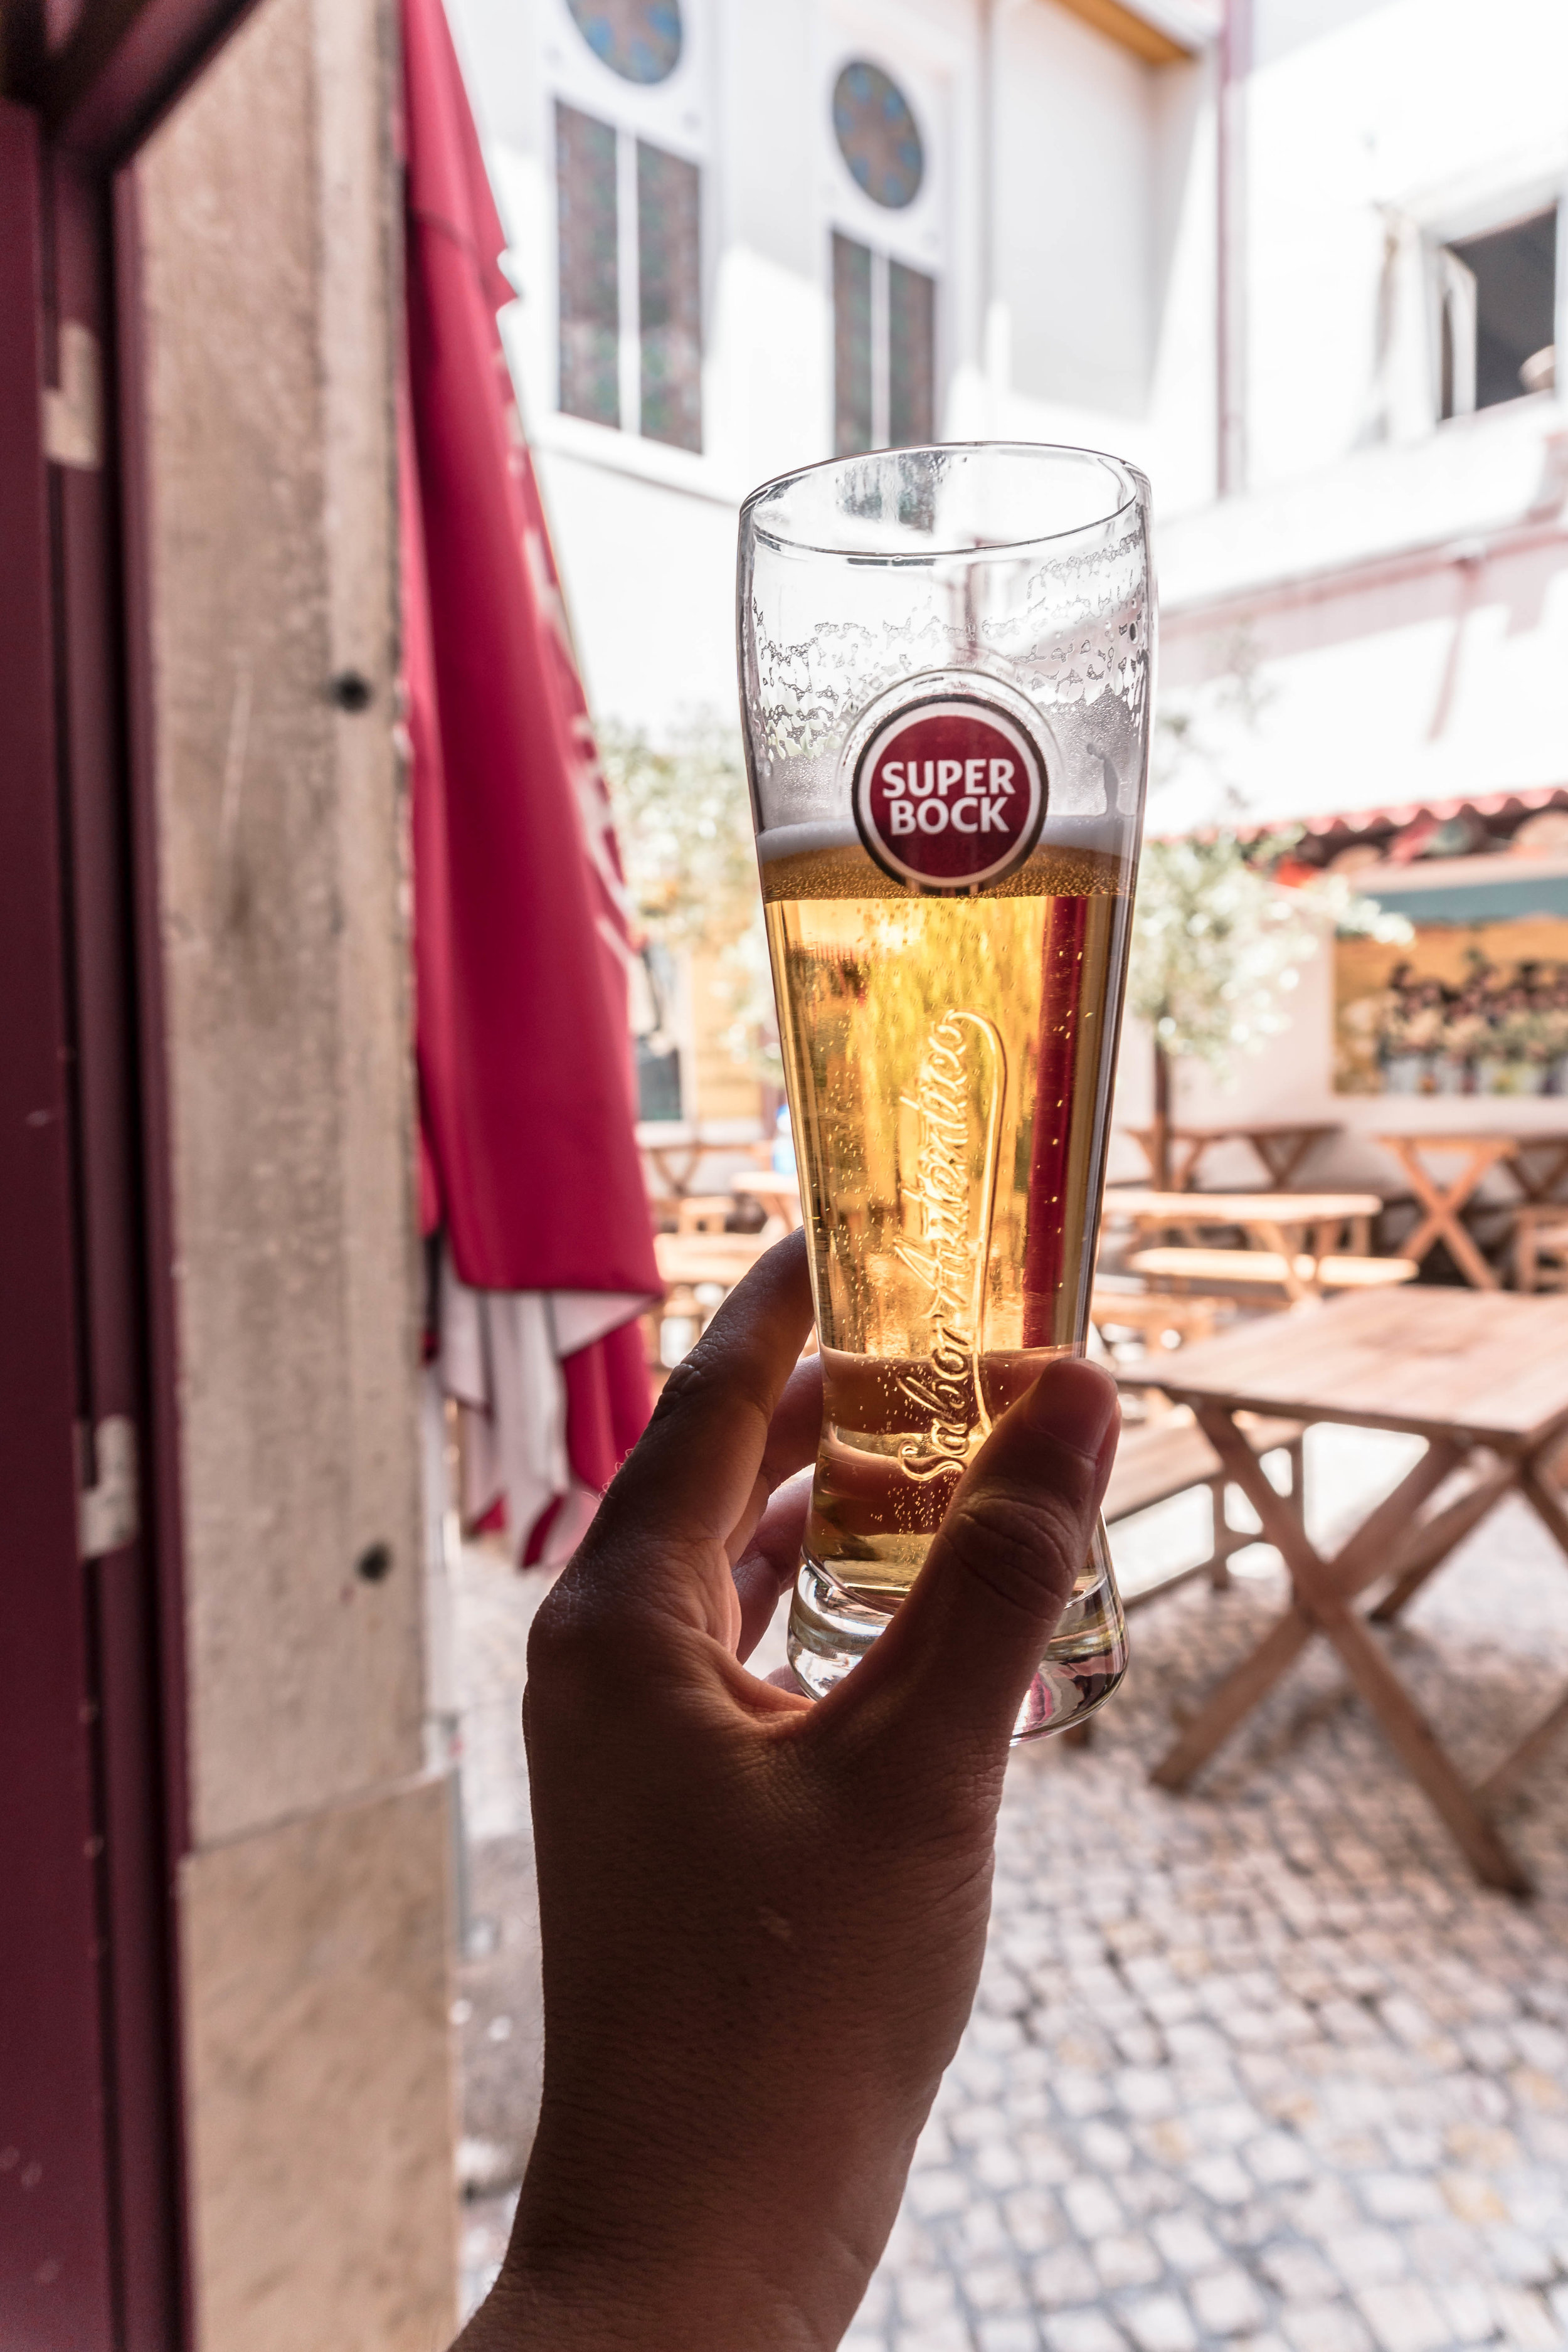 what to expect on Eating Europe's new Lisbon food tour